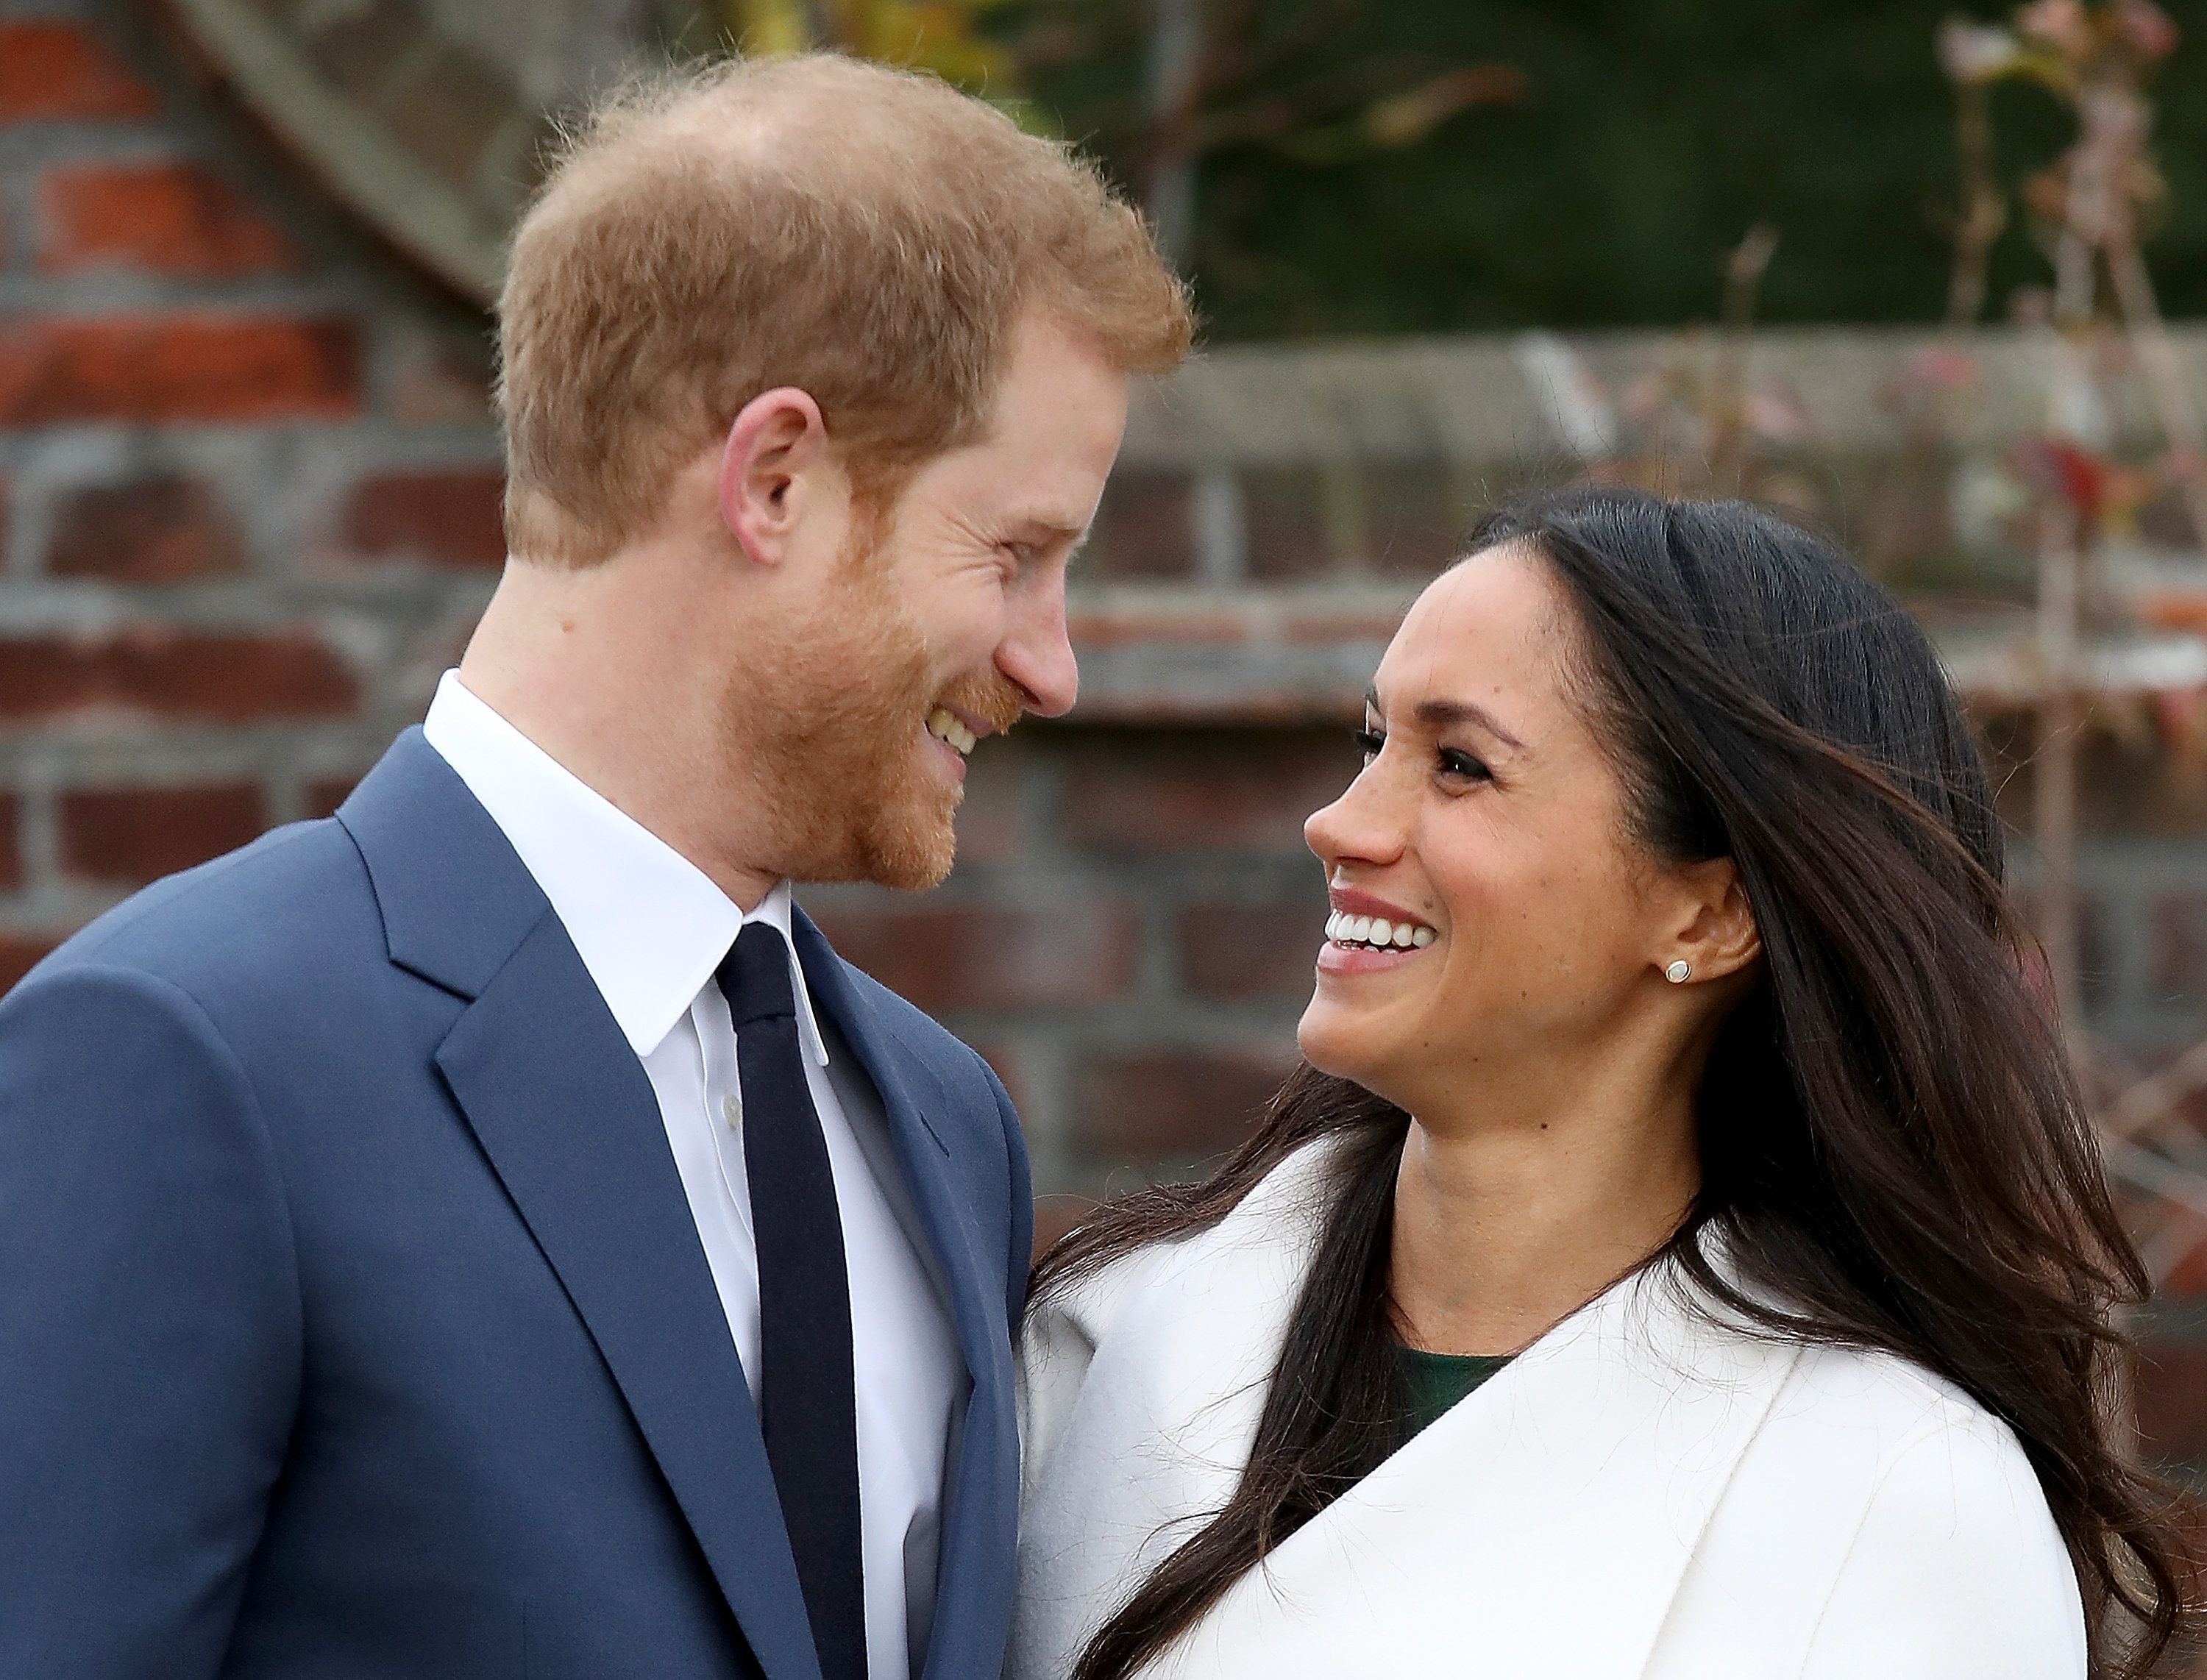 Harry and Meghan announce their engagement at Kensington Palace